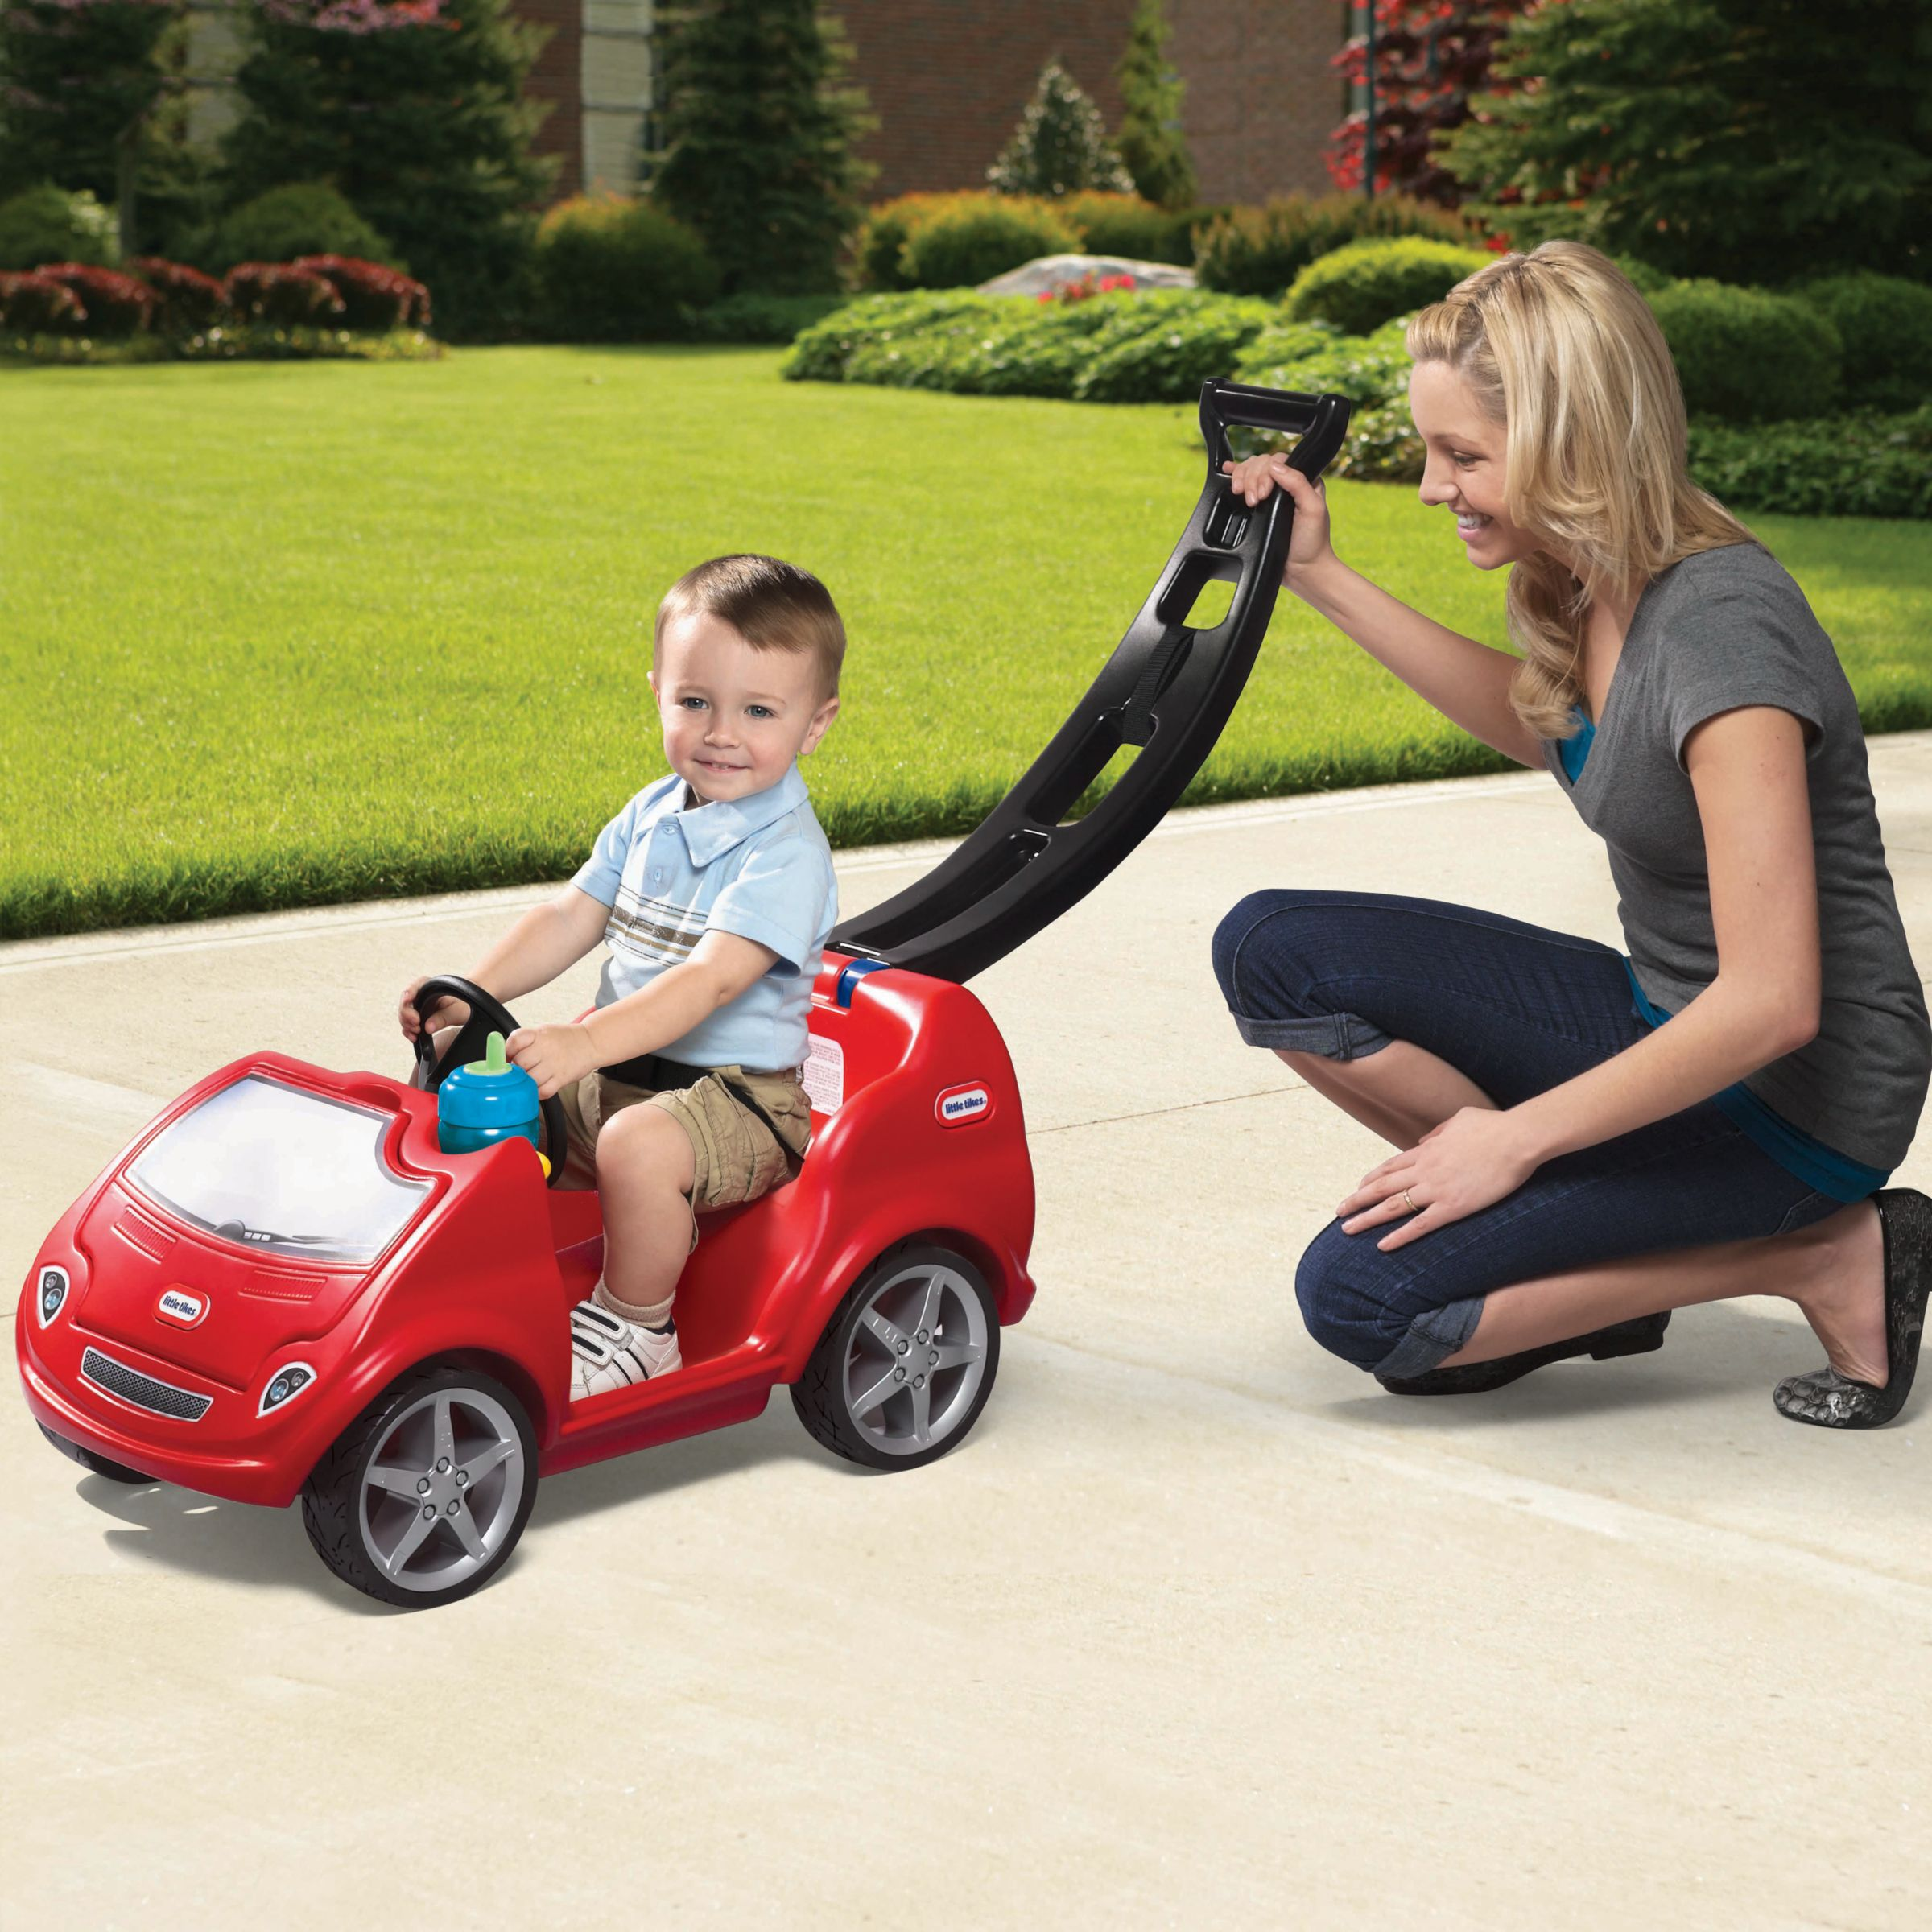 Little Tikes Mobile Push 'n' Ride Car